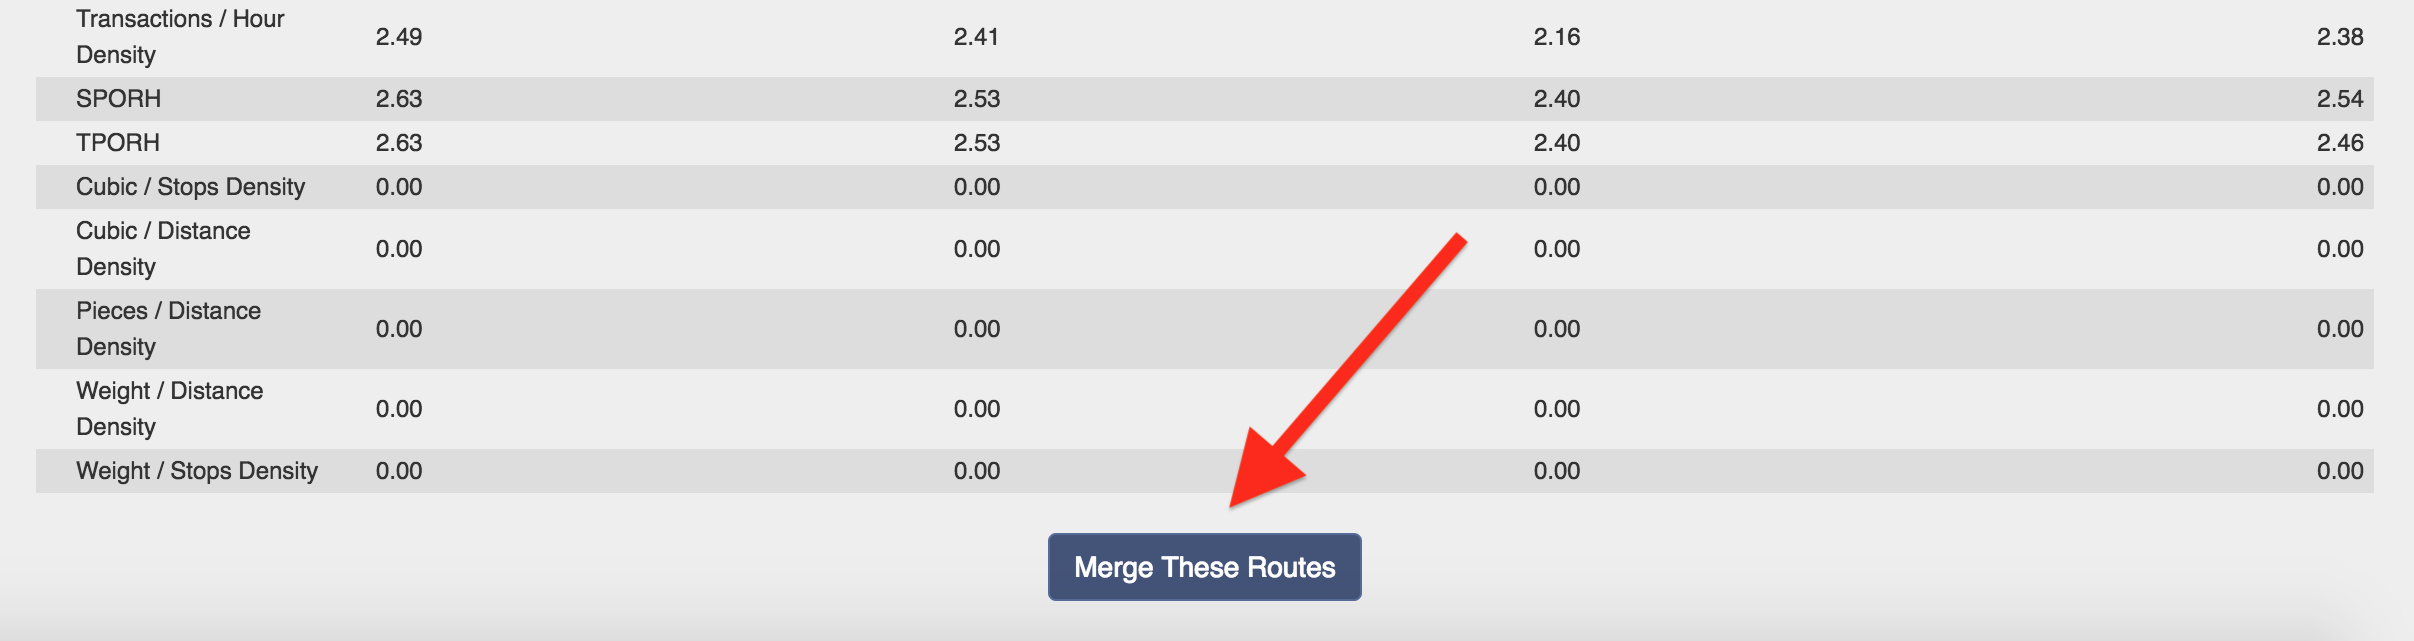 Merge routes into one using Route4Me's side by side comparison